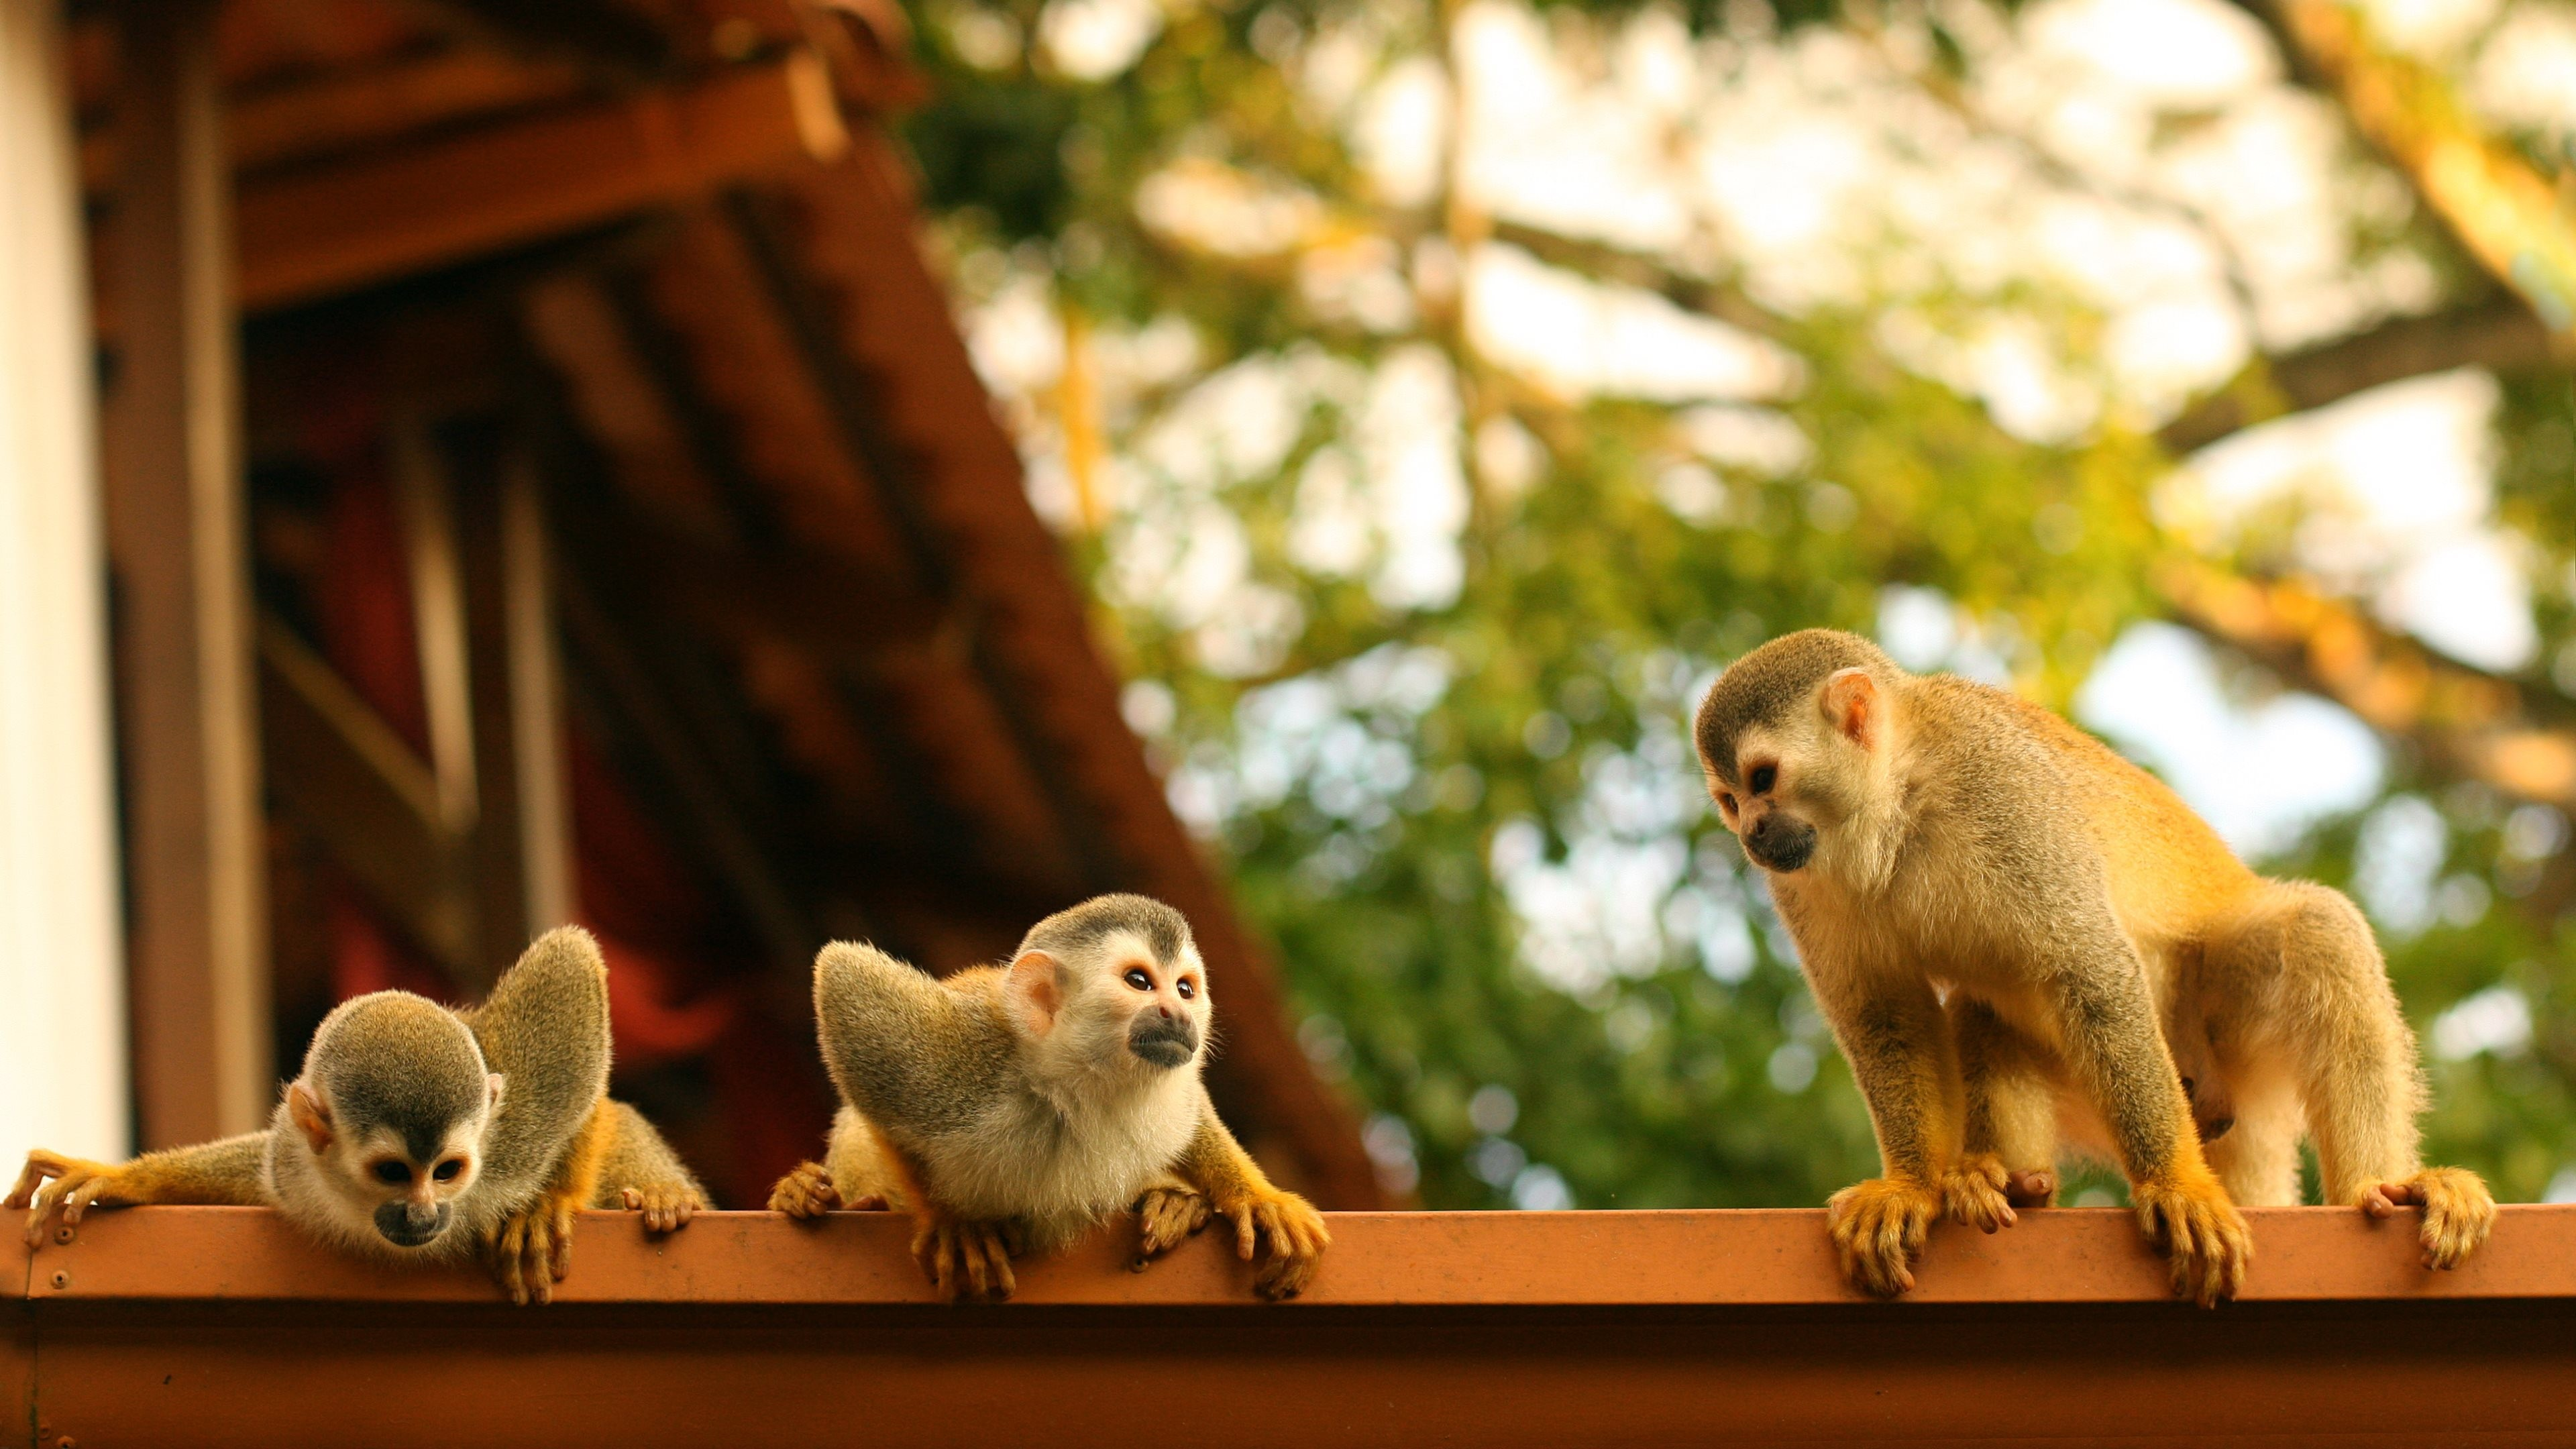 Wallpaper Monkeys Atelidae Costa Rica Animals 882